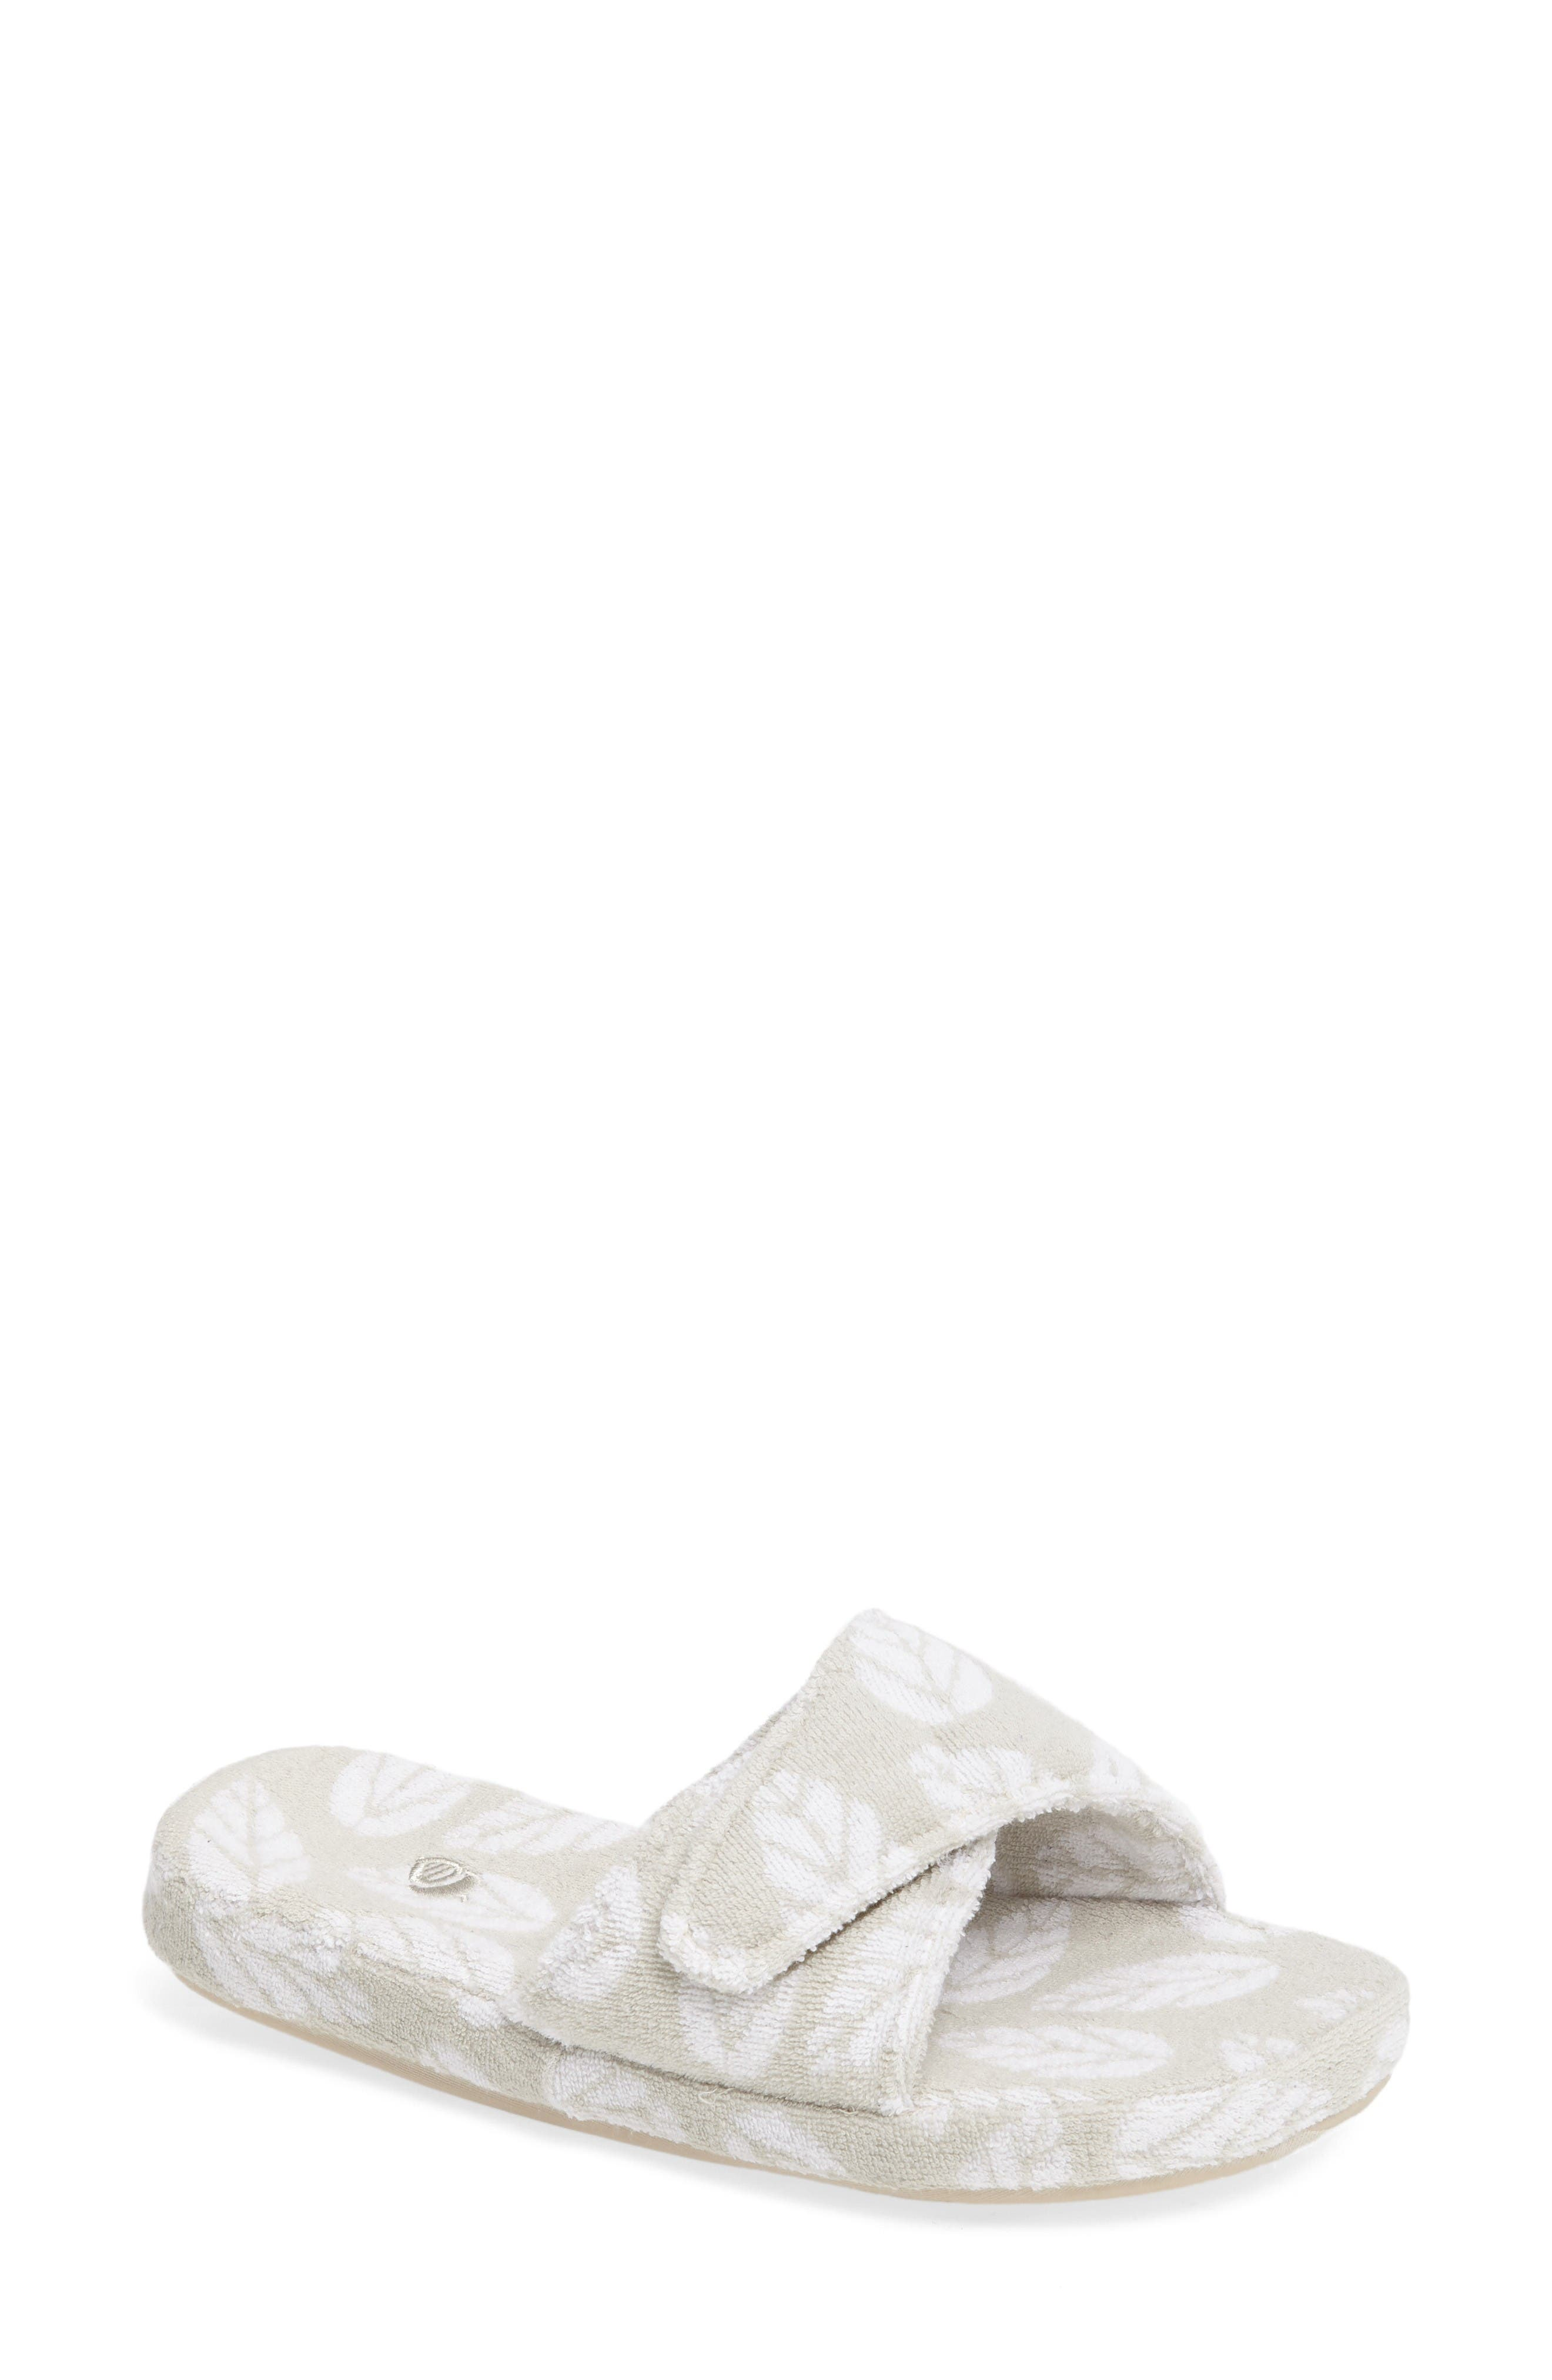 Acorn Summerweight Slide Spa Slipper (Women)